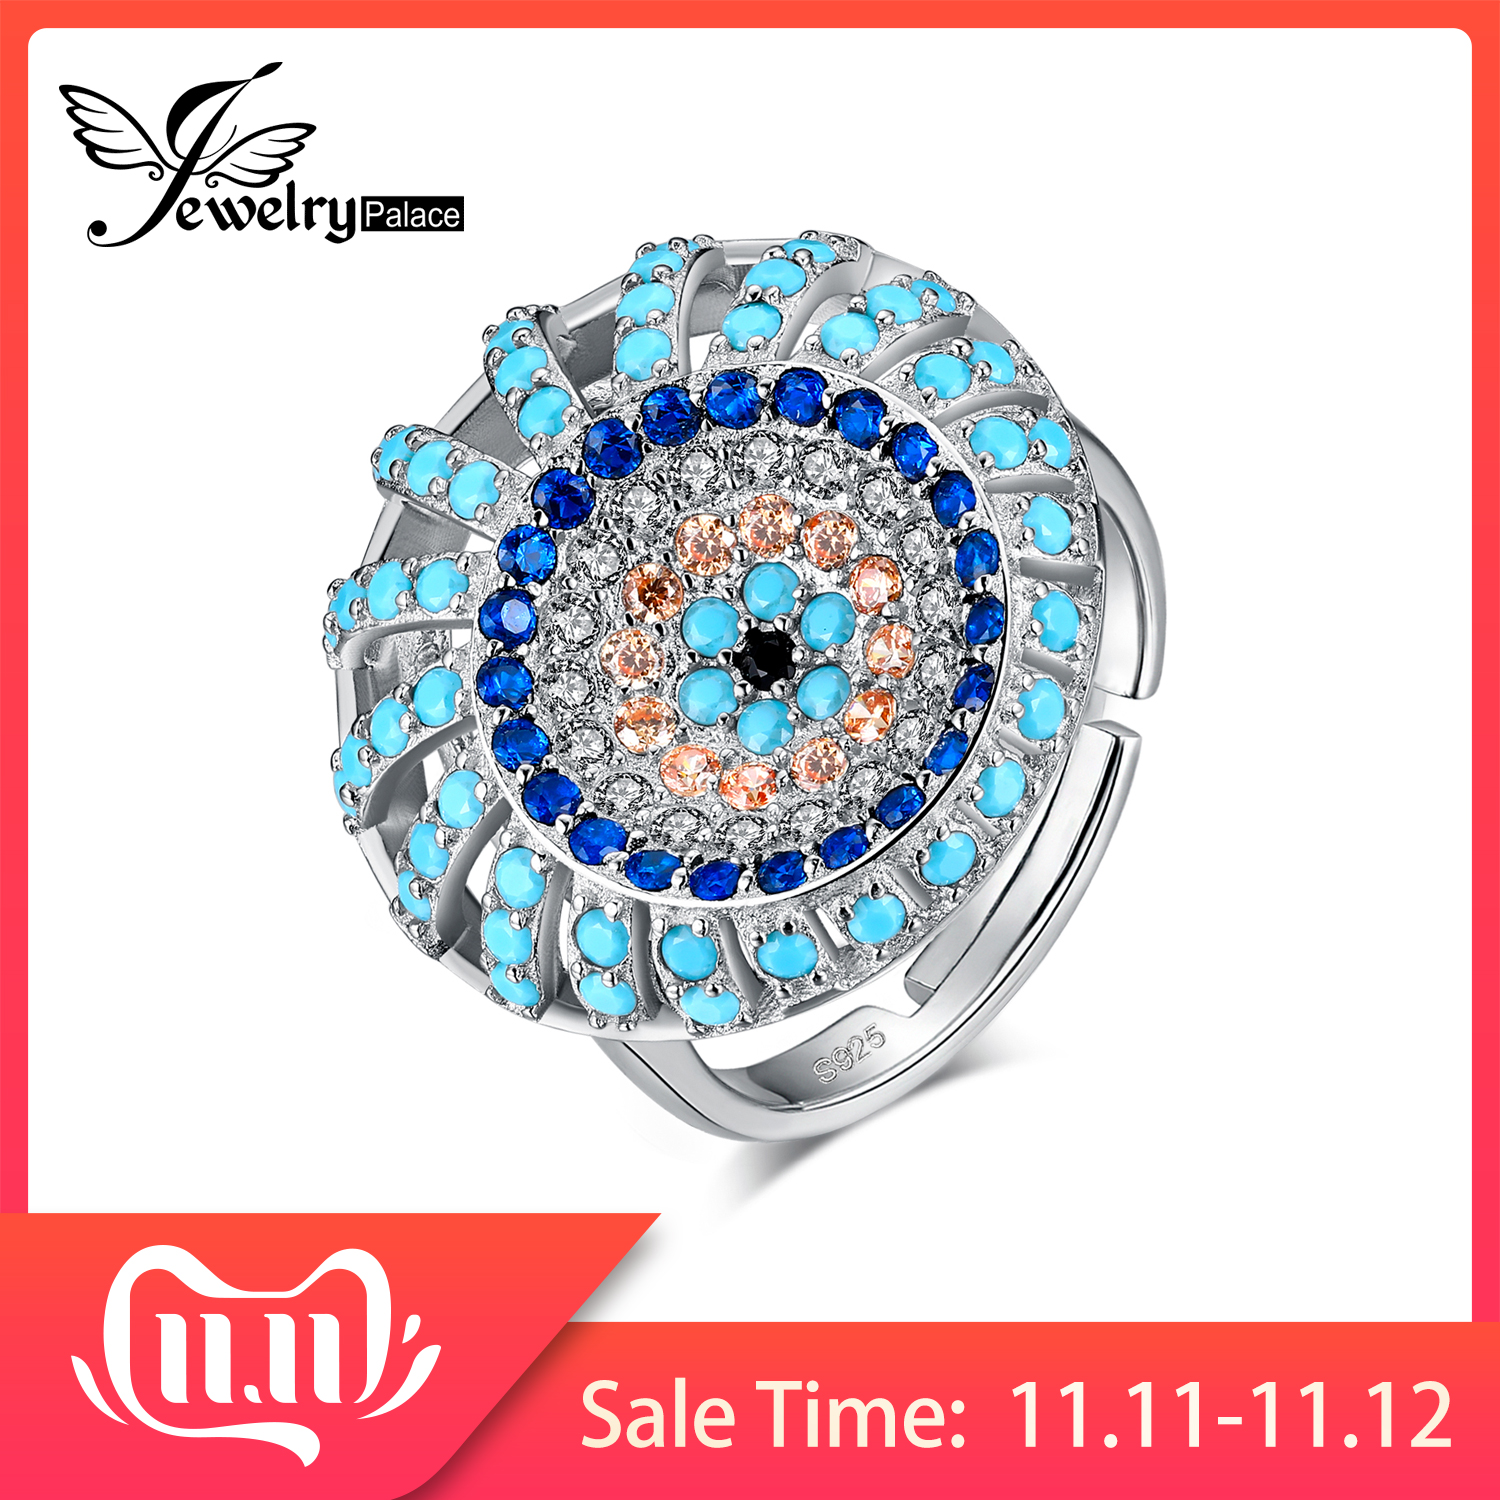 JewelryPalace Bohemian Boho Simulated Turquoise Ring 925 Sterling Silver Rings For Women Party Cocktail Ring Silver 925 Jewelry